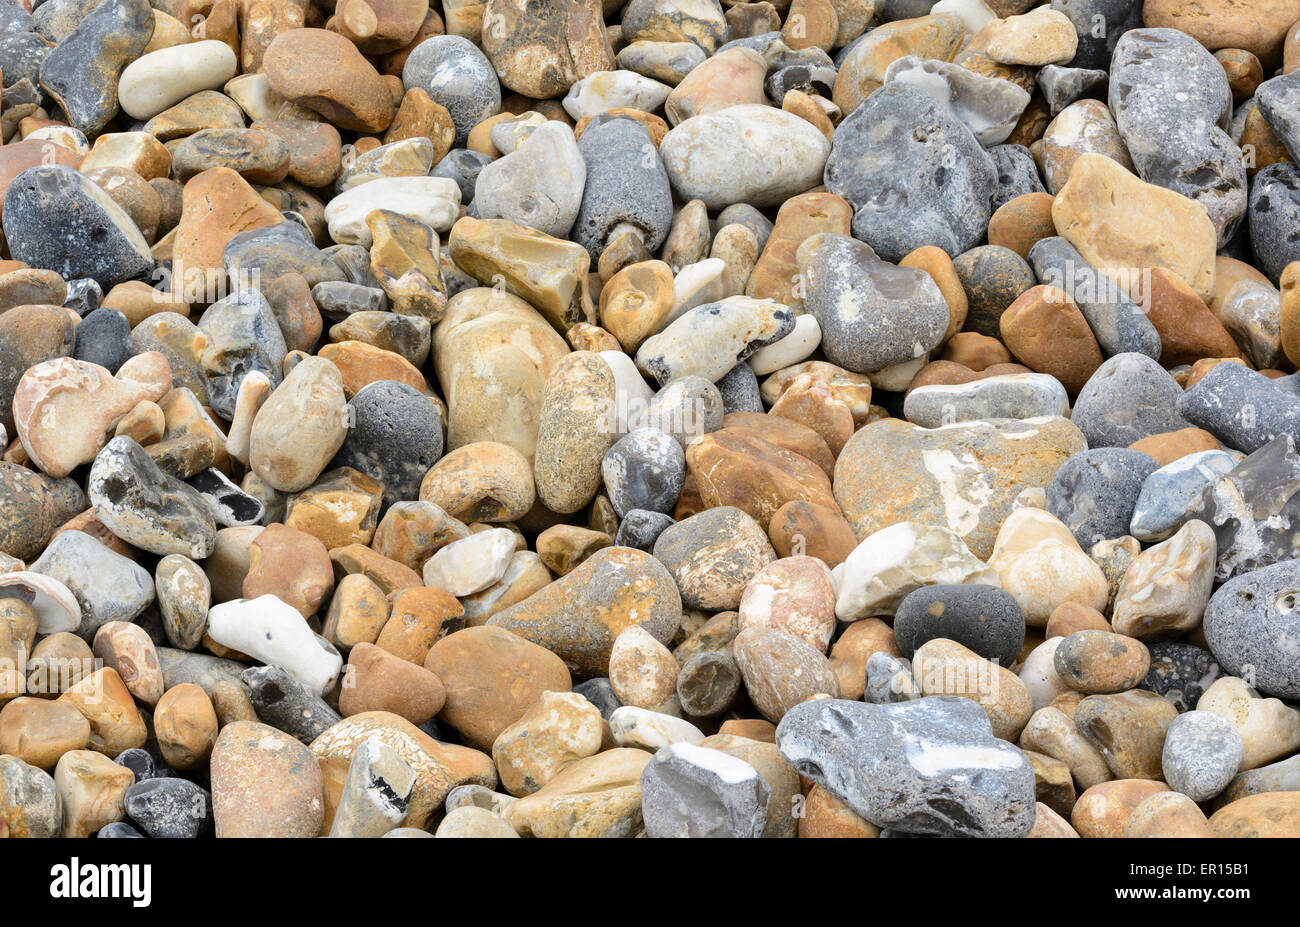 Stones and pebbles on a shingle beach. - Stock Image